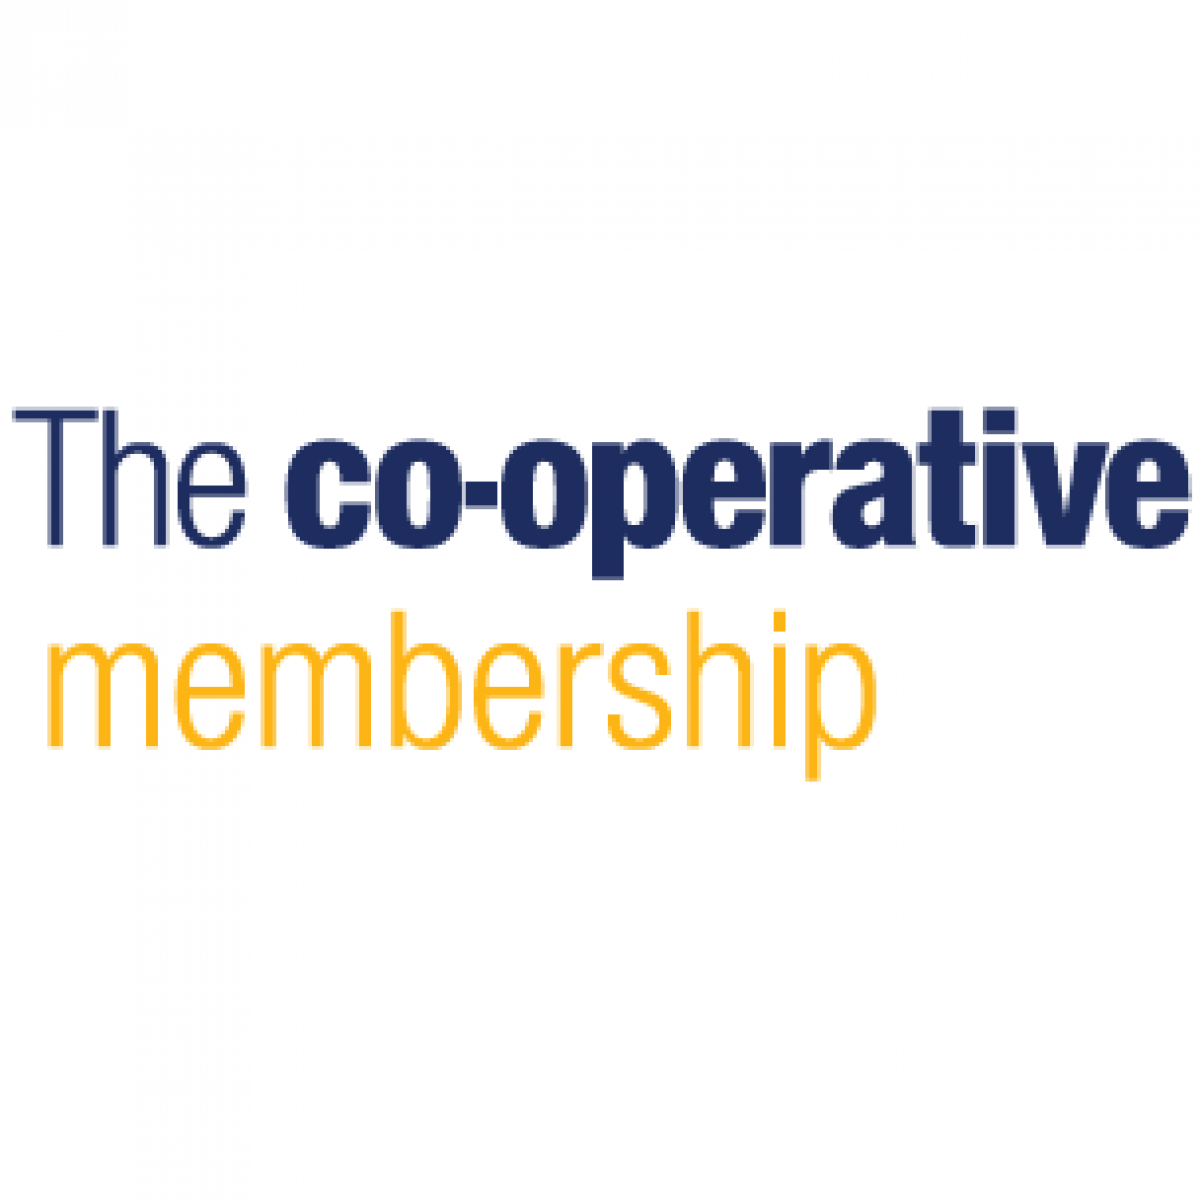 cooperative group ethical concerns report The co-operative group's social and sustainability goals are set out in its 'ethical operating plan', which states it has a purpose beyond profit and that some things are plainly unjust and need to be tackled, with or without a business case.